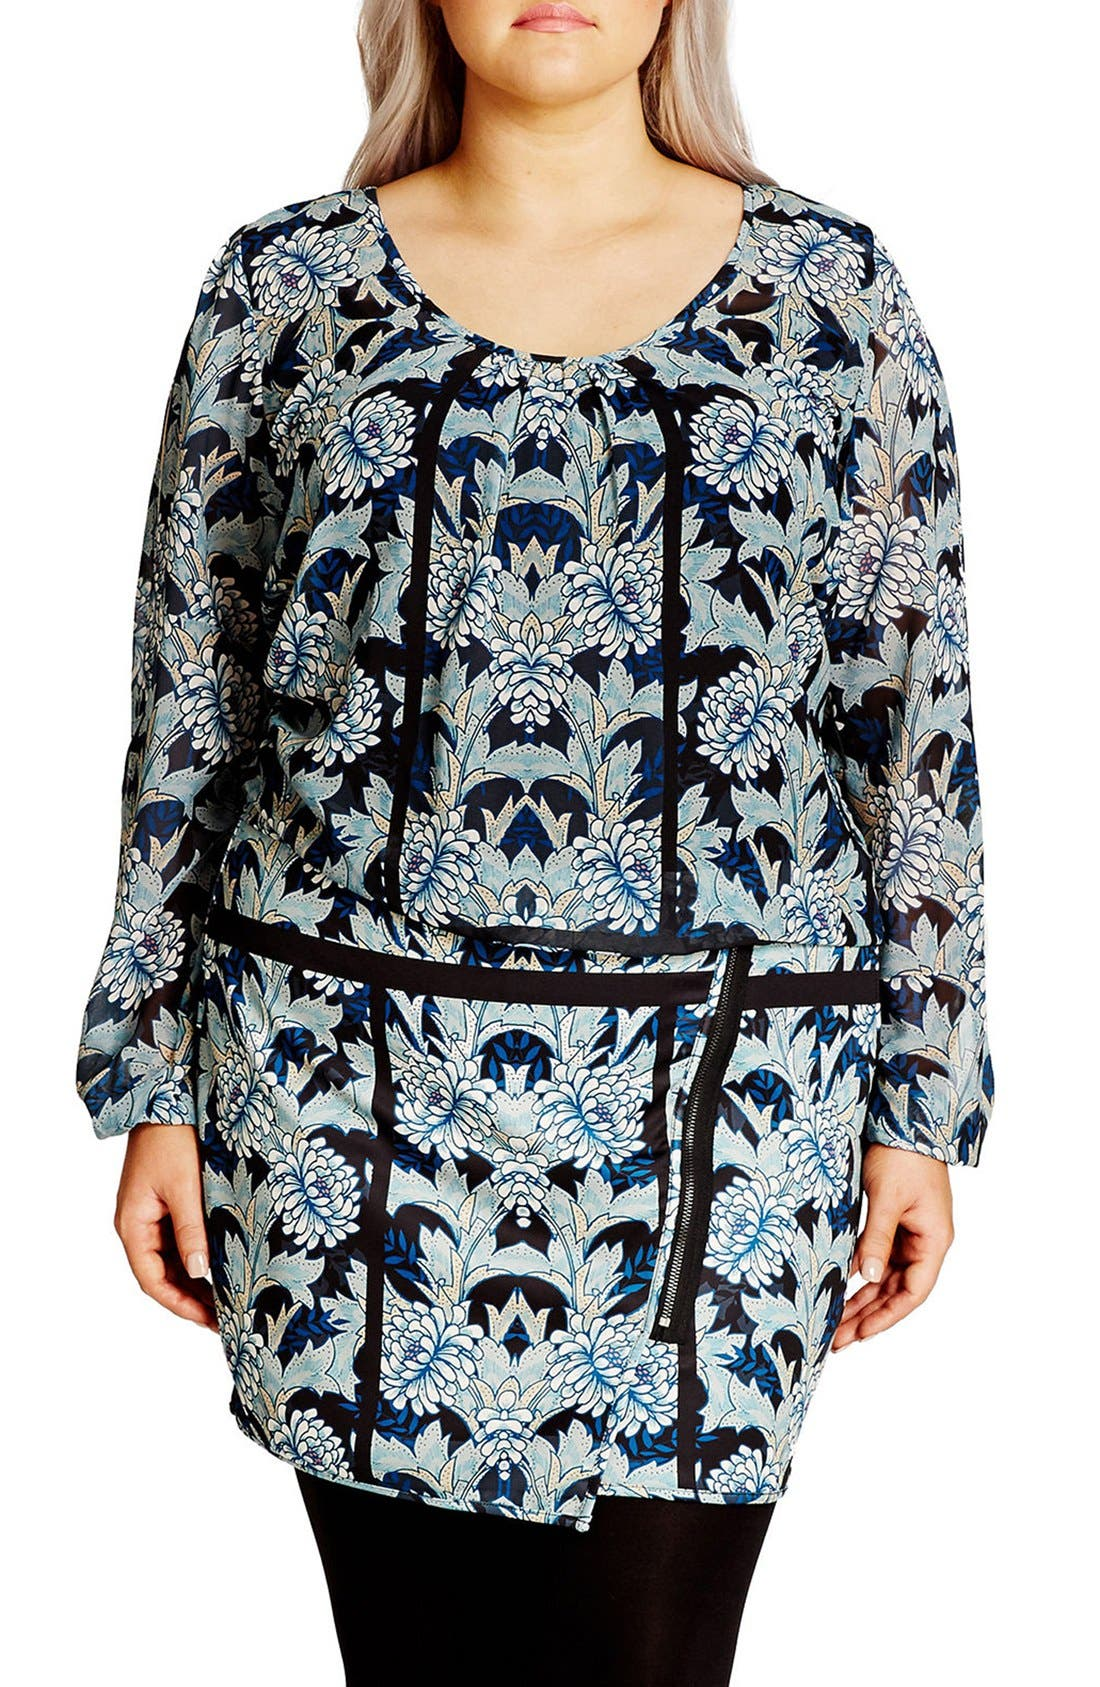 Main Image - City Chic 'Stained Glass' Blouson Minidress (Plus Size)